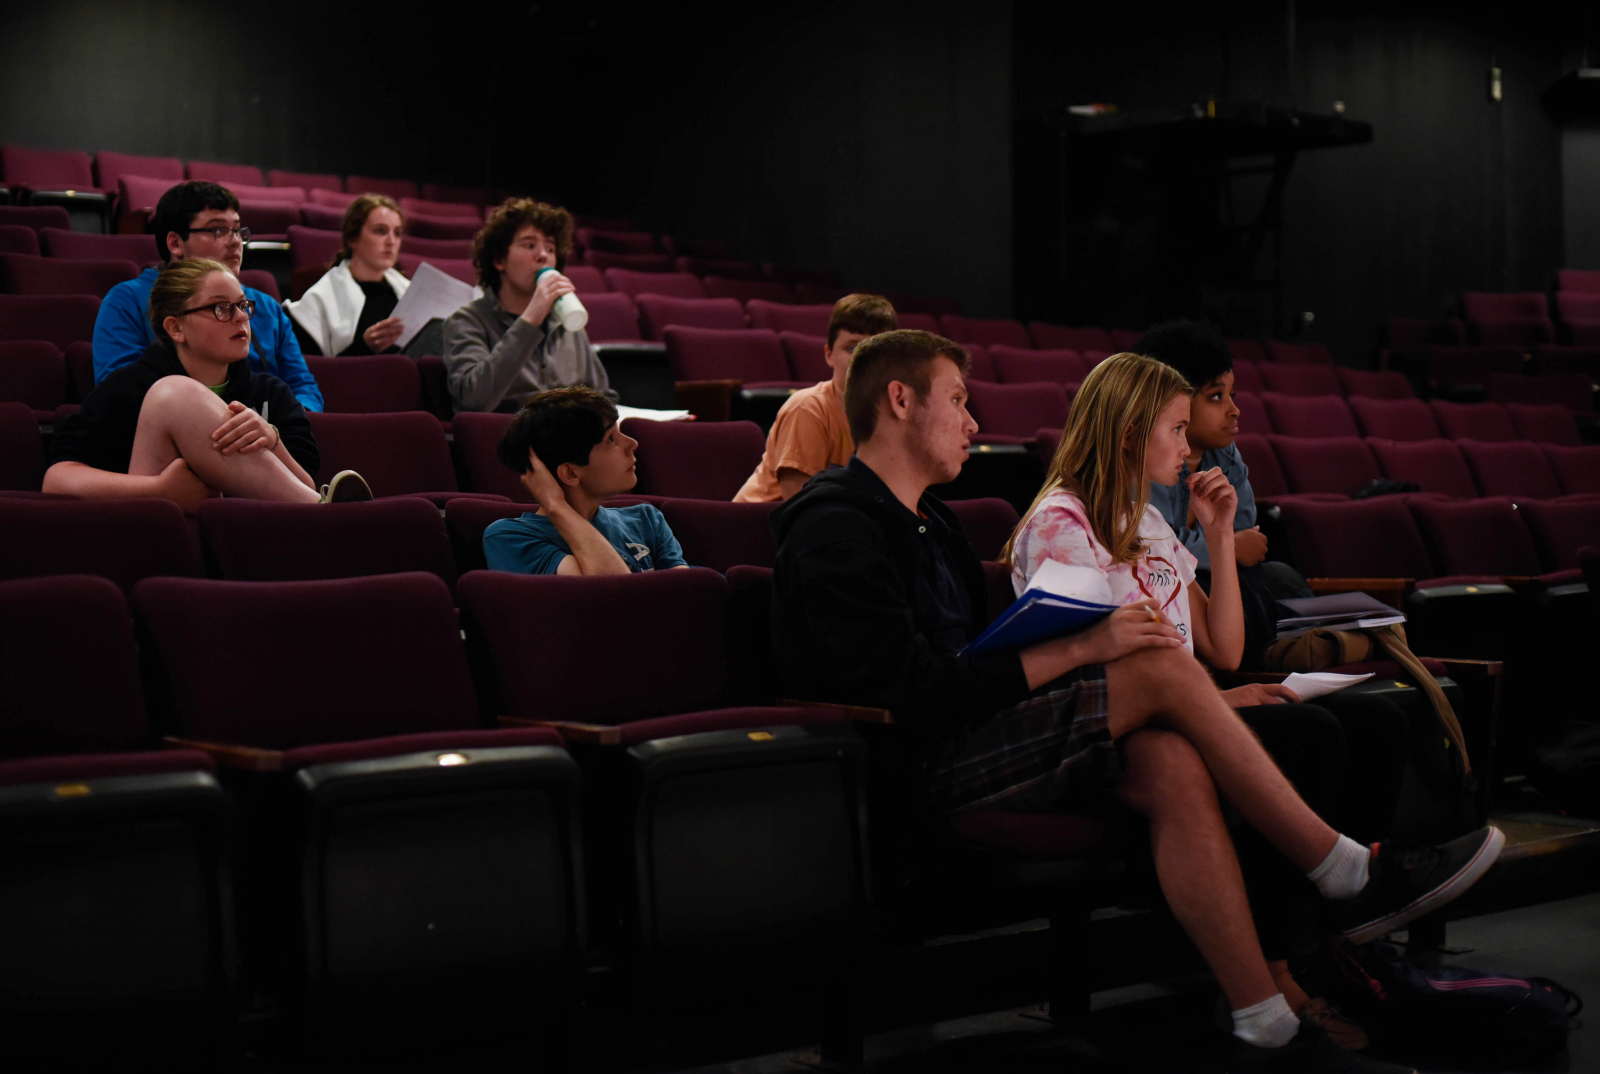 Students in the Summer Stage Young Acting Company program rehearse scenes from plays written by area teens at theREP in Albany Thursday, July 27, 2017.